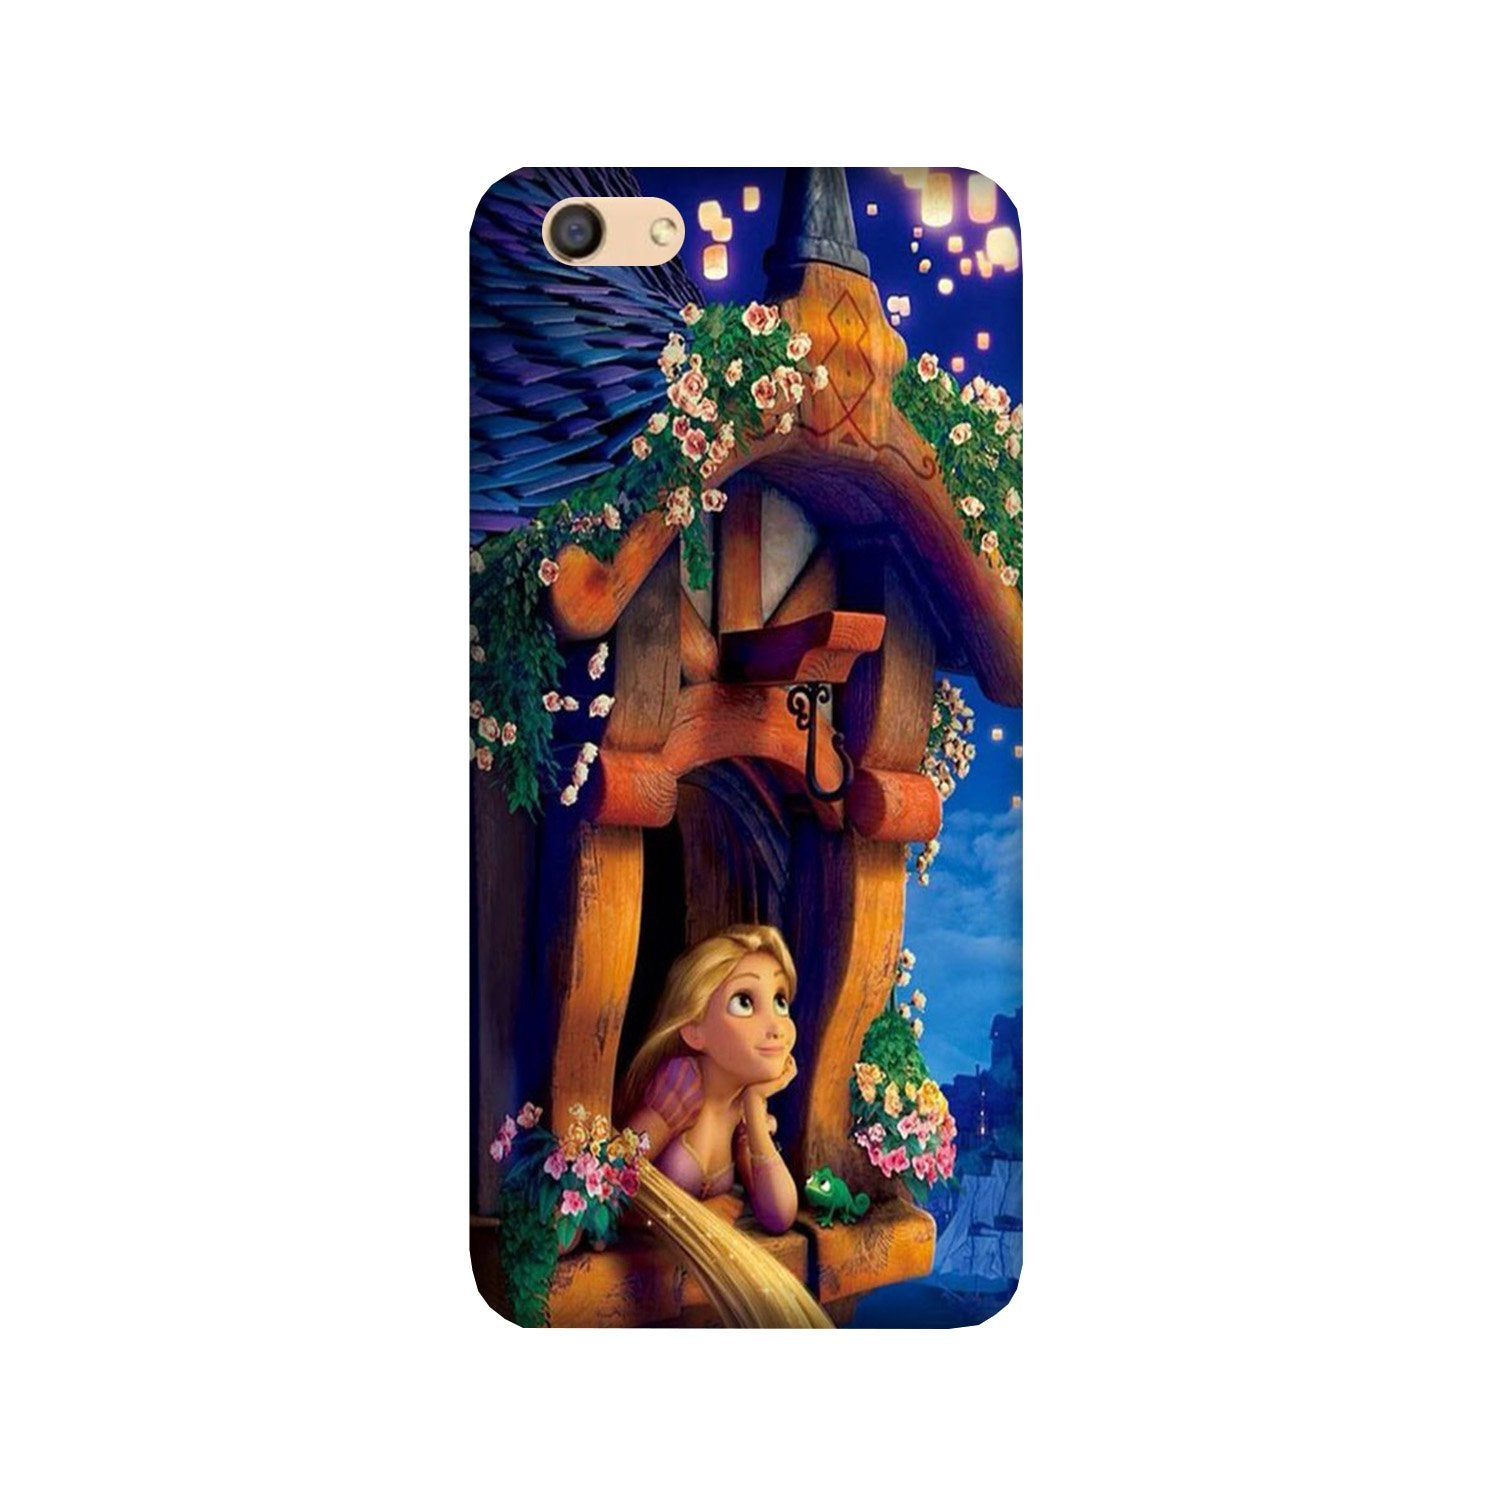 Cute Girl Case for Vivo Y55s/Y55L (Design - 198)